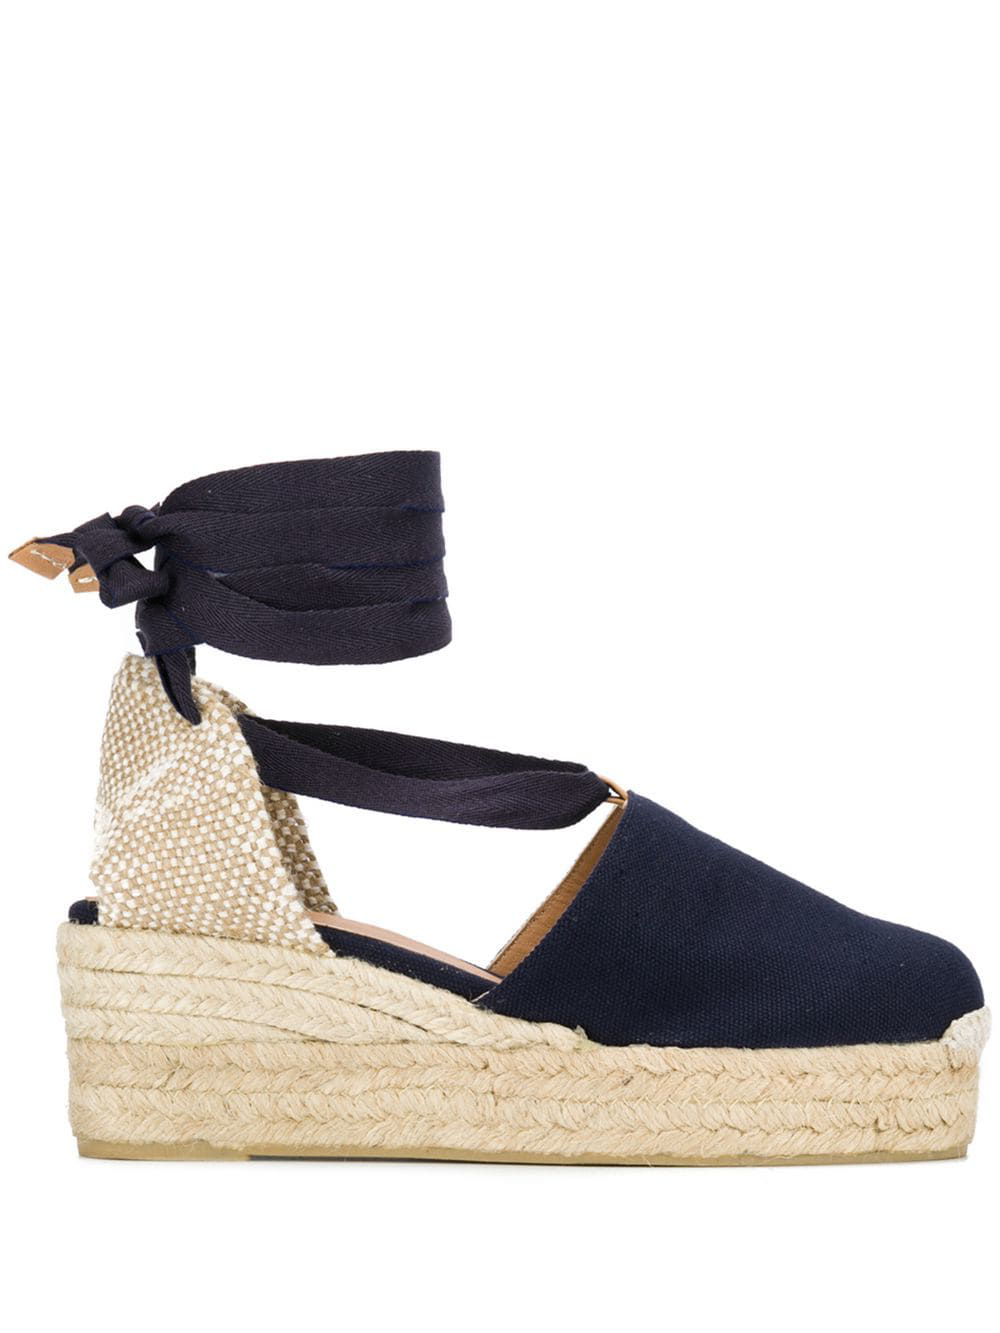 5bf222dd59ae Navy blue cotton and leather Campesina espadrilles from Castañer featuring a  round toe